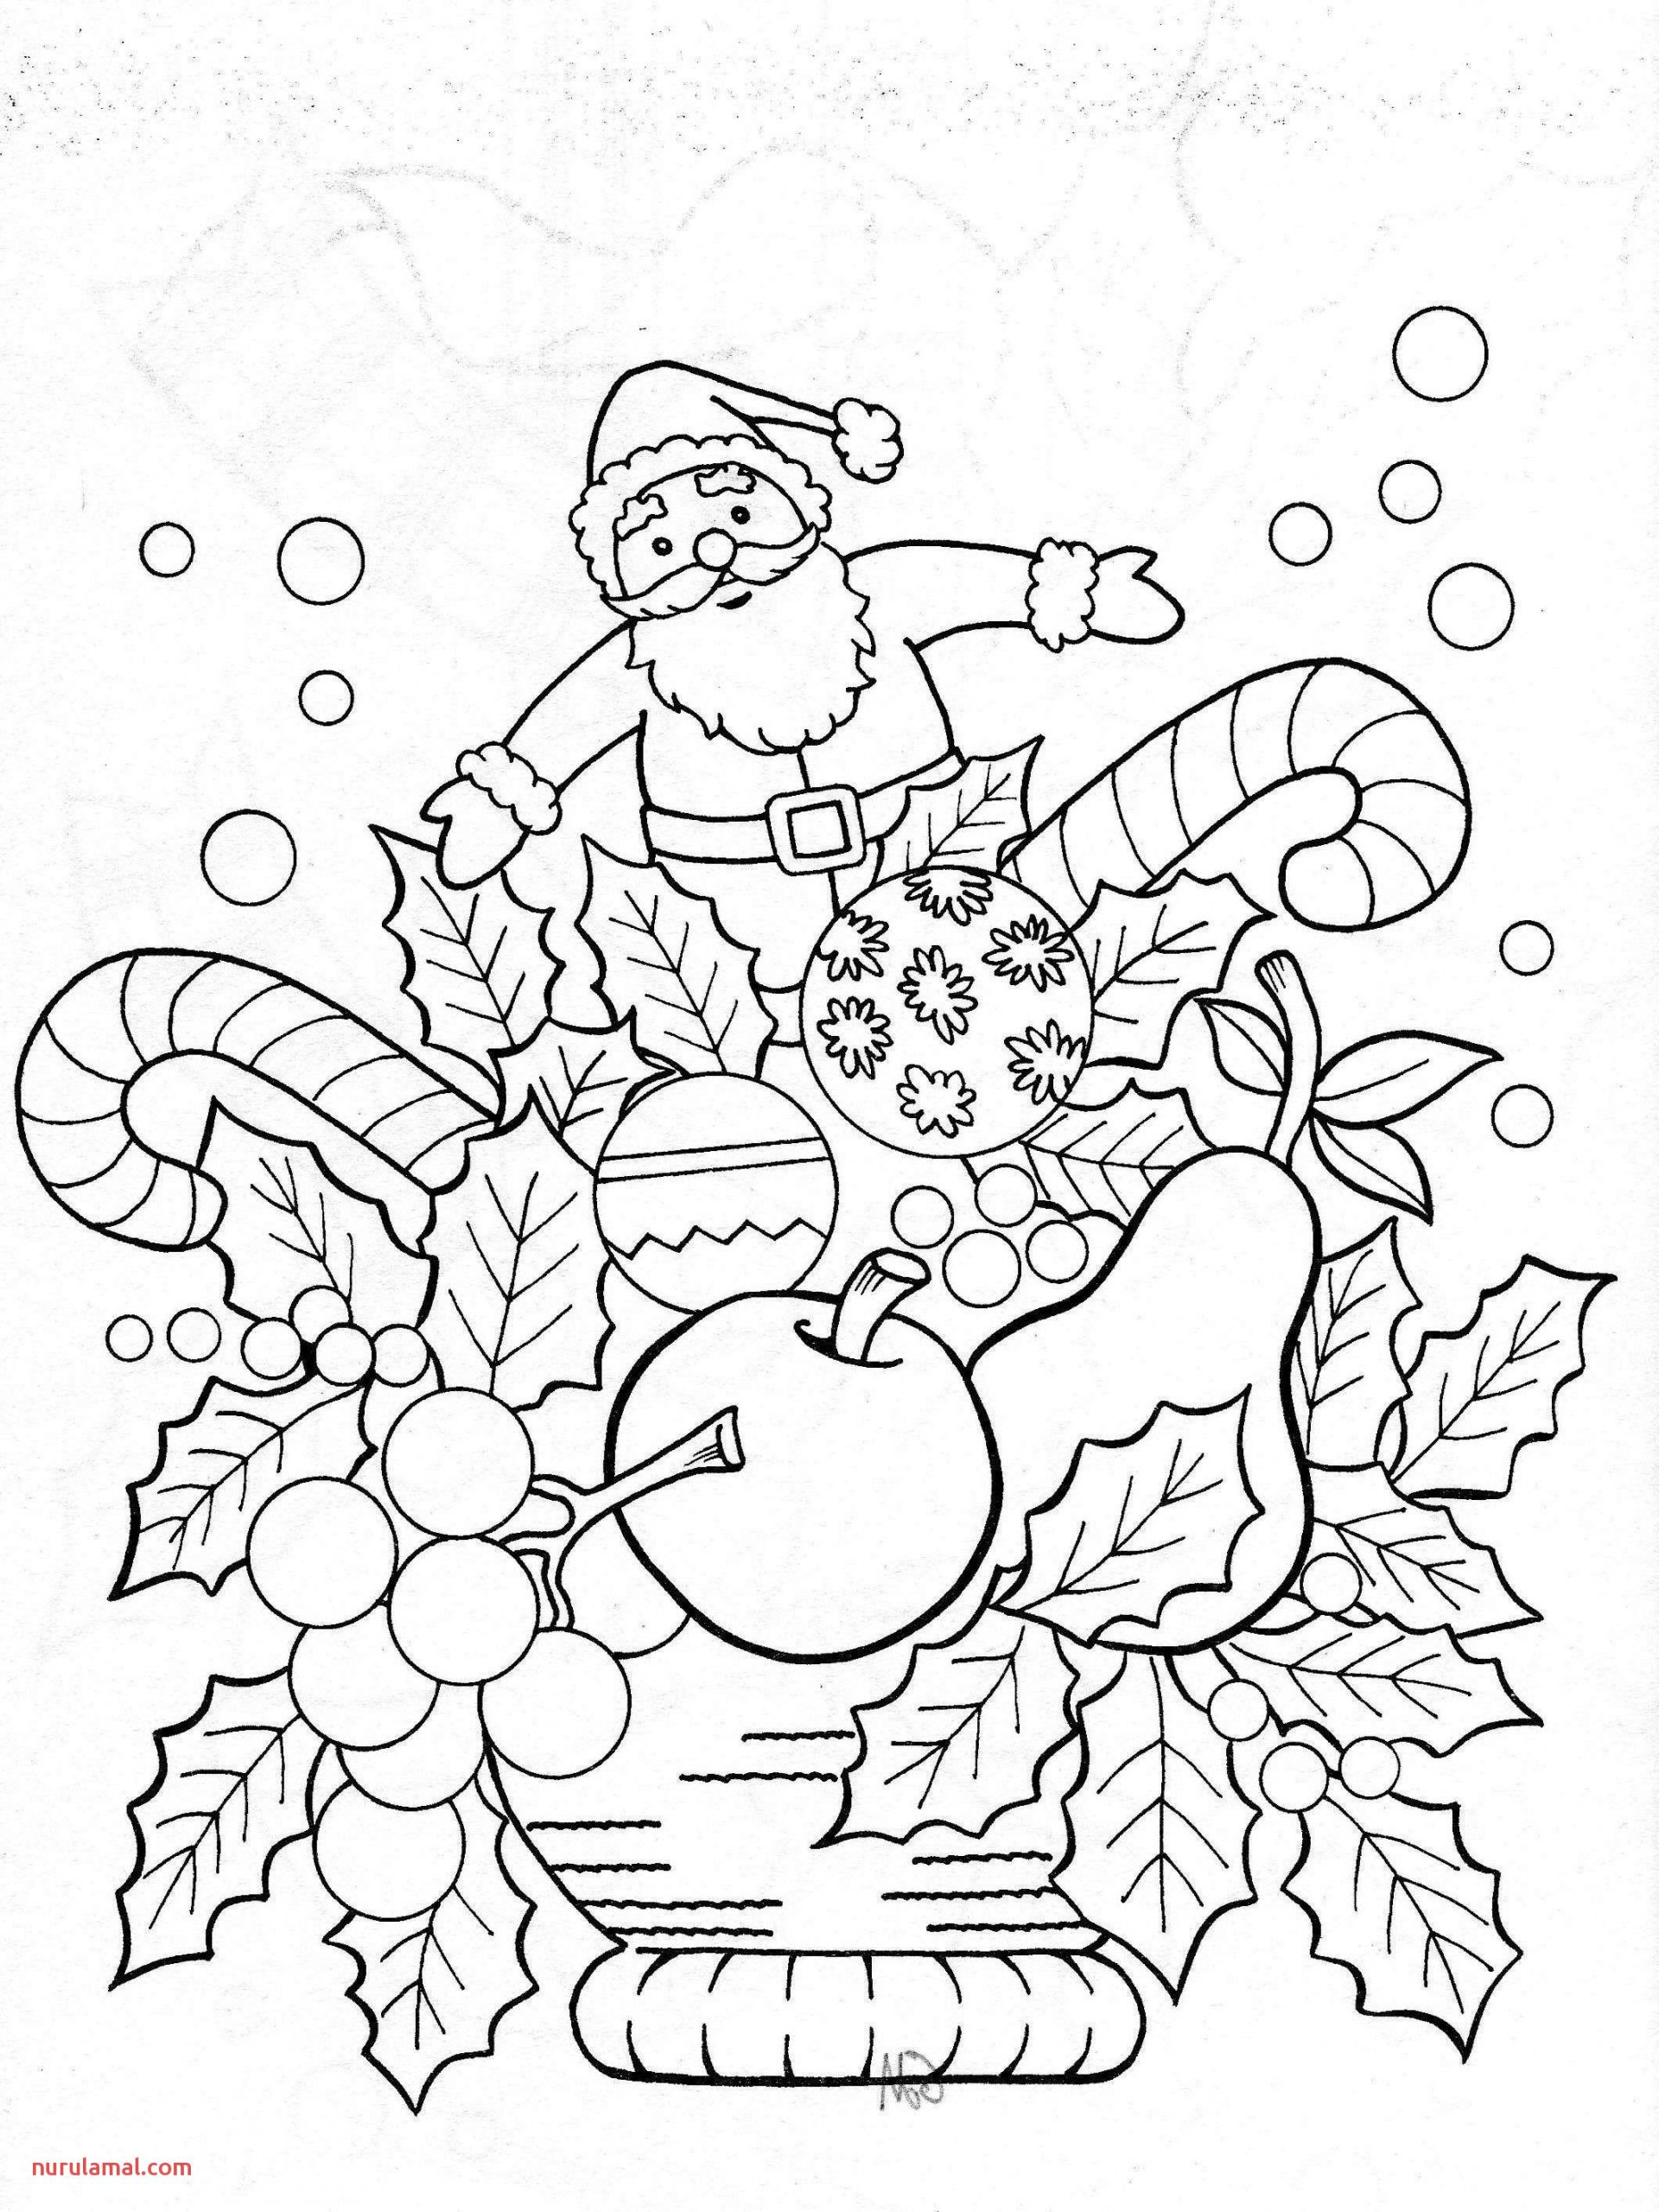 Christmas Coloring Pages for Printable New Cool Coloring